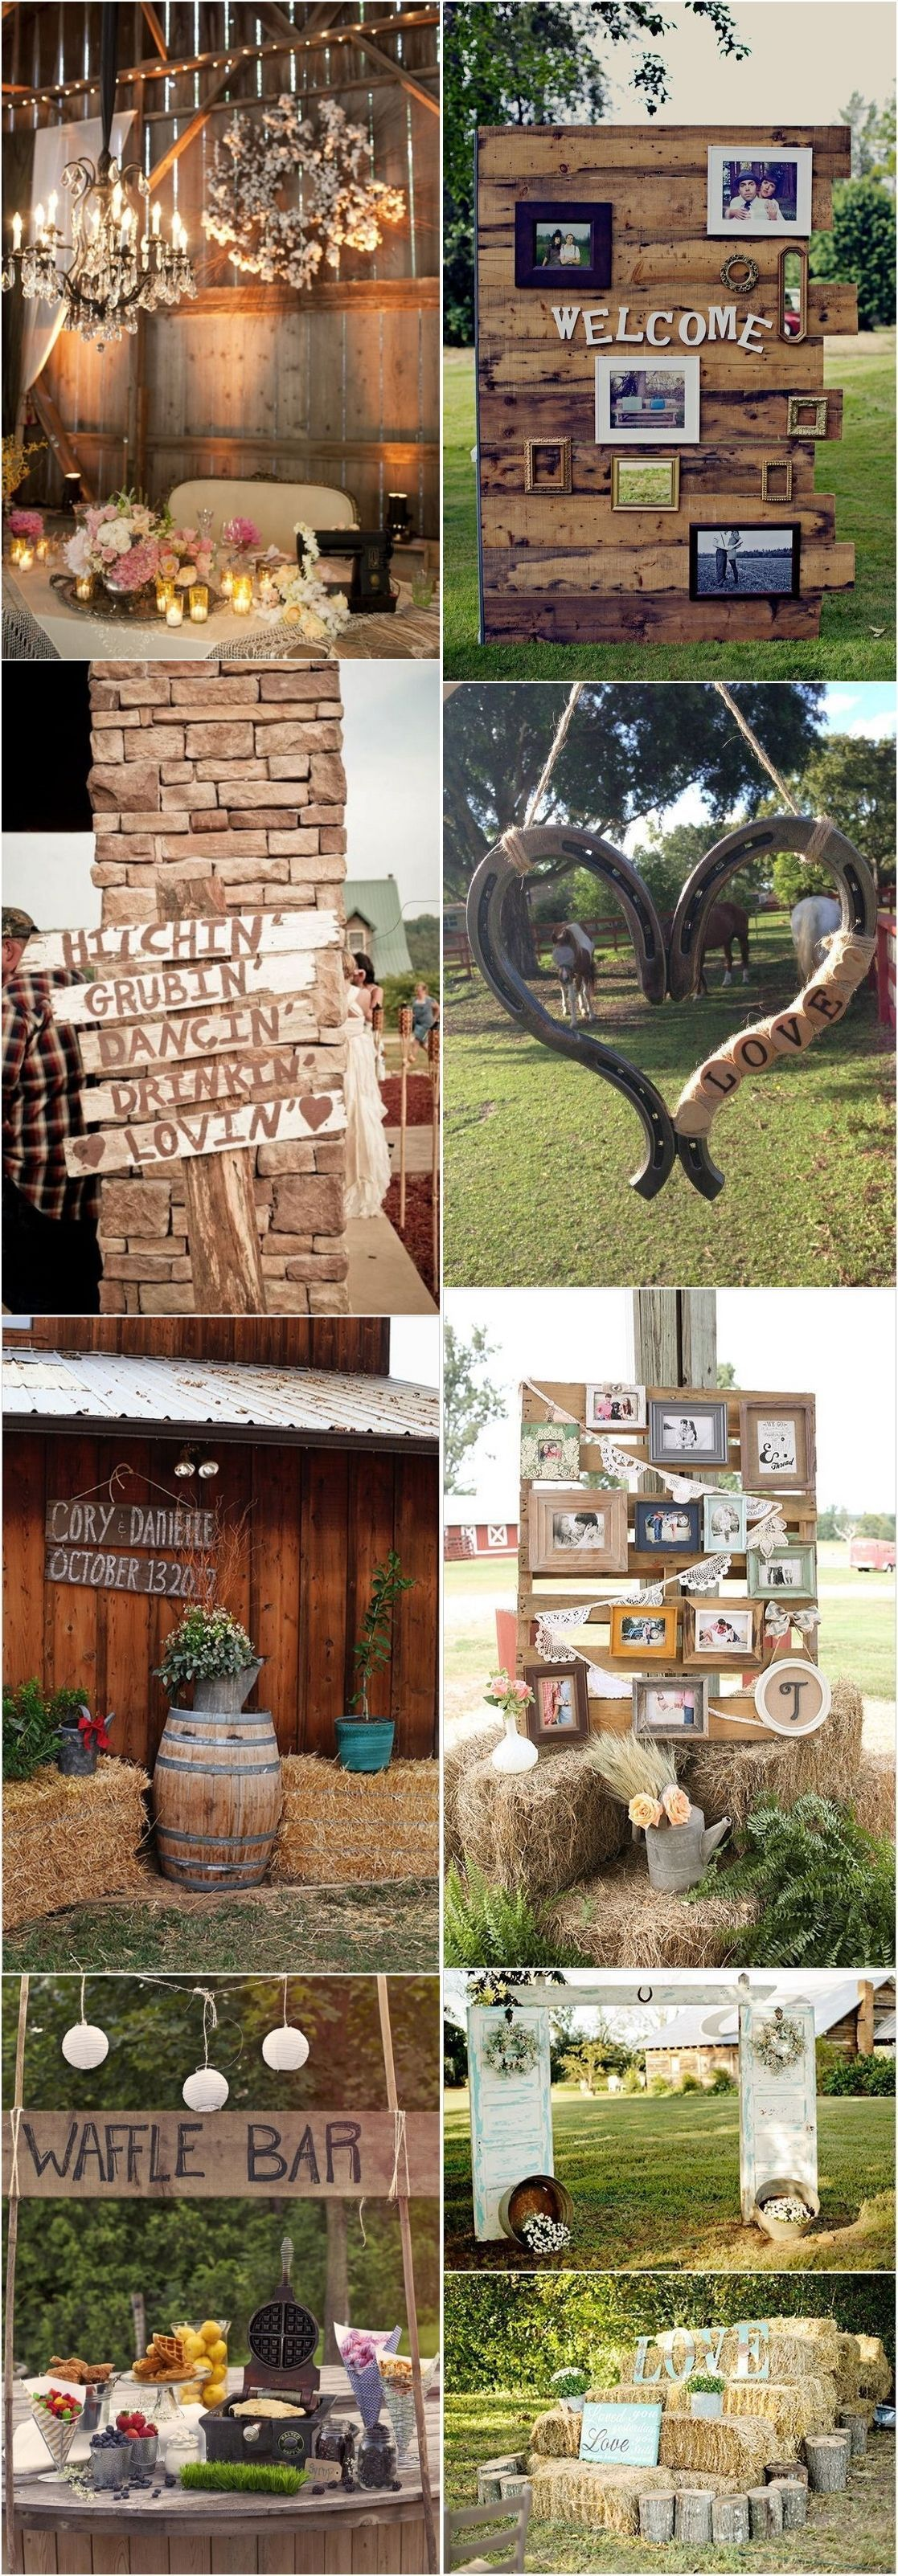 Wedding decorations venue october 2018  Gorgeous Country Rustic Wedding Ideas for your Big Day in